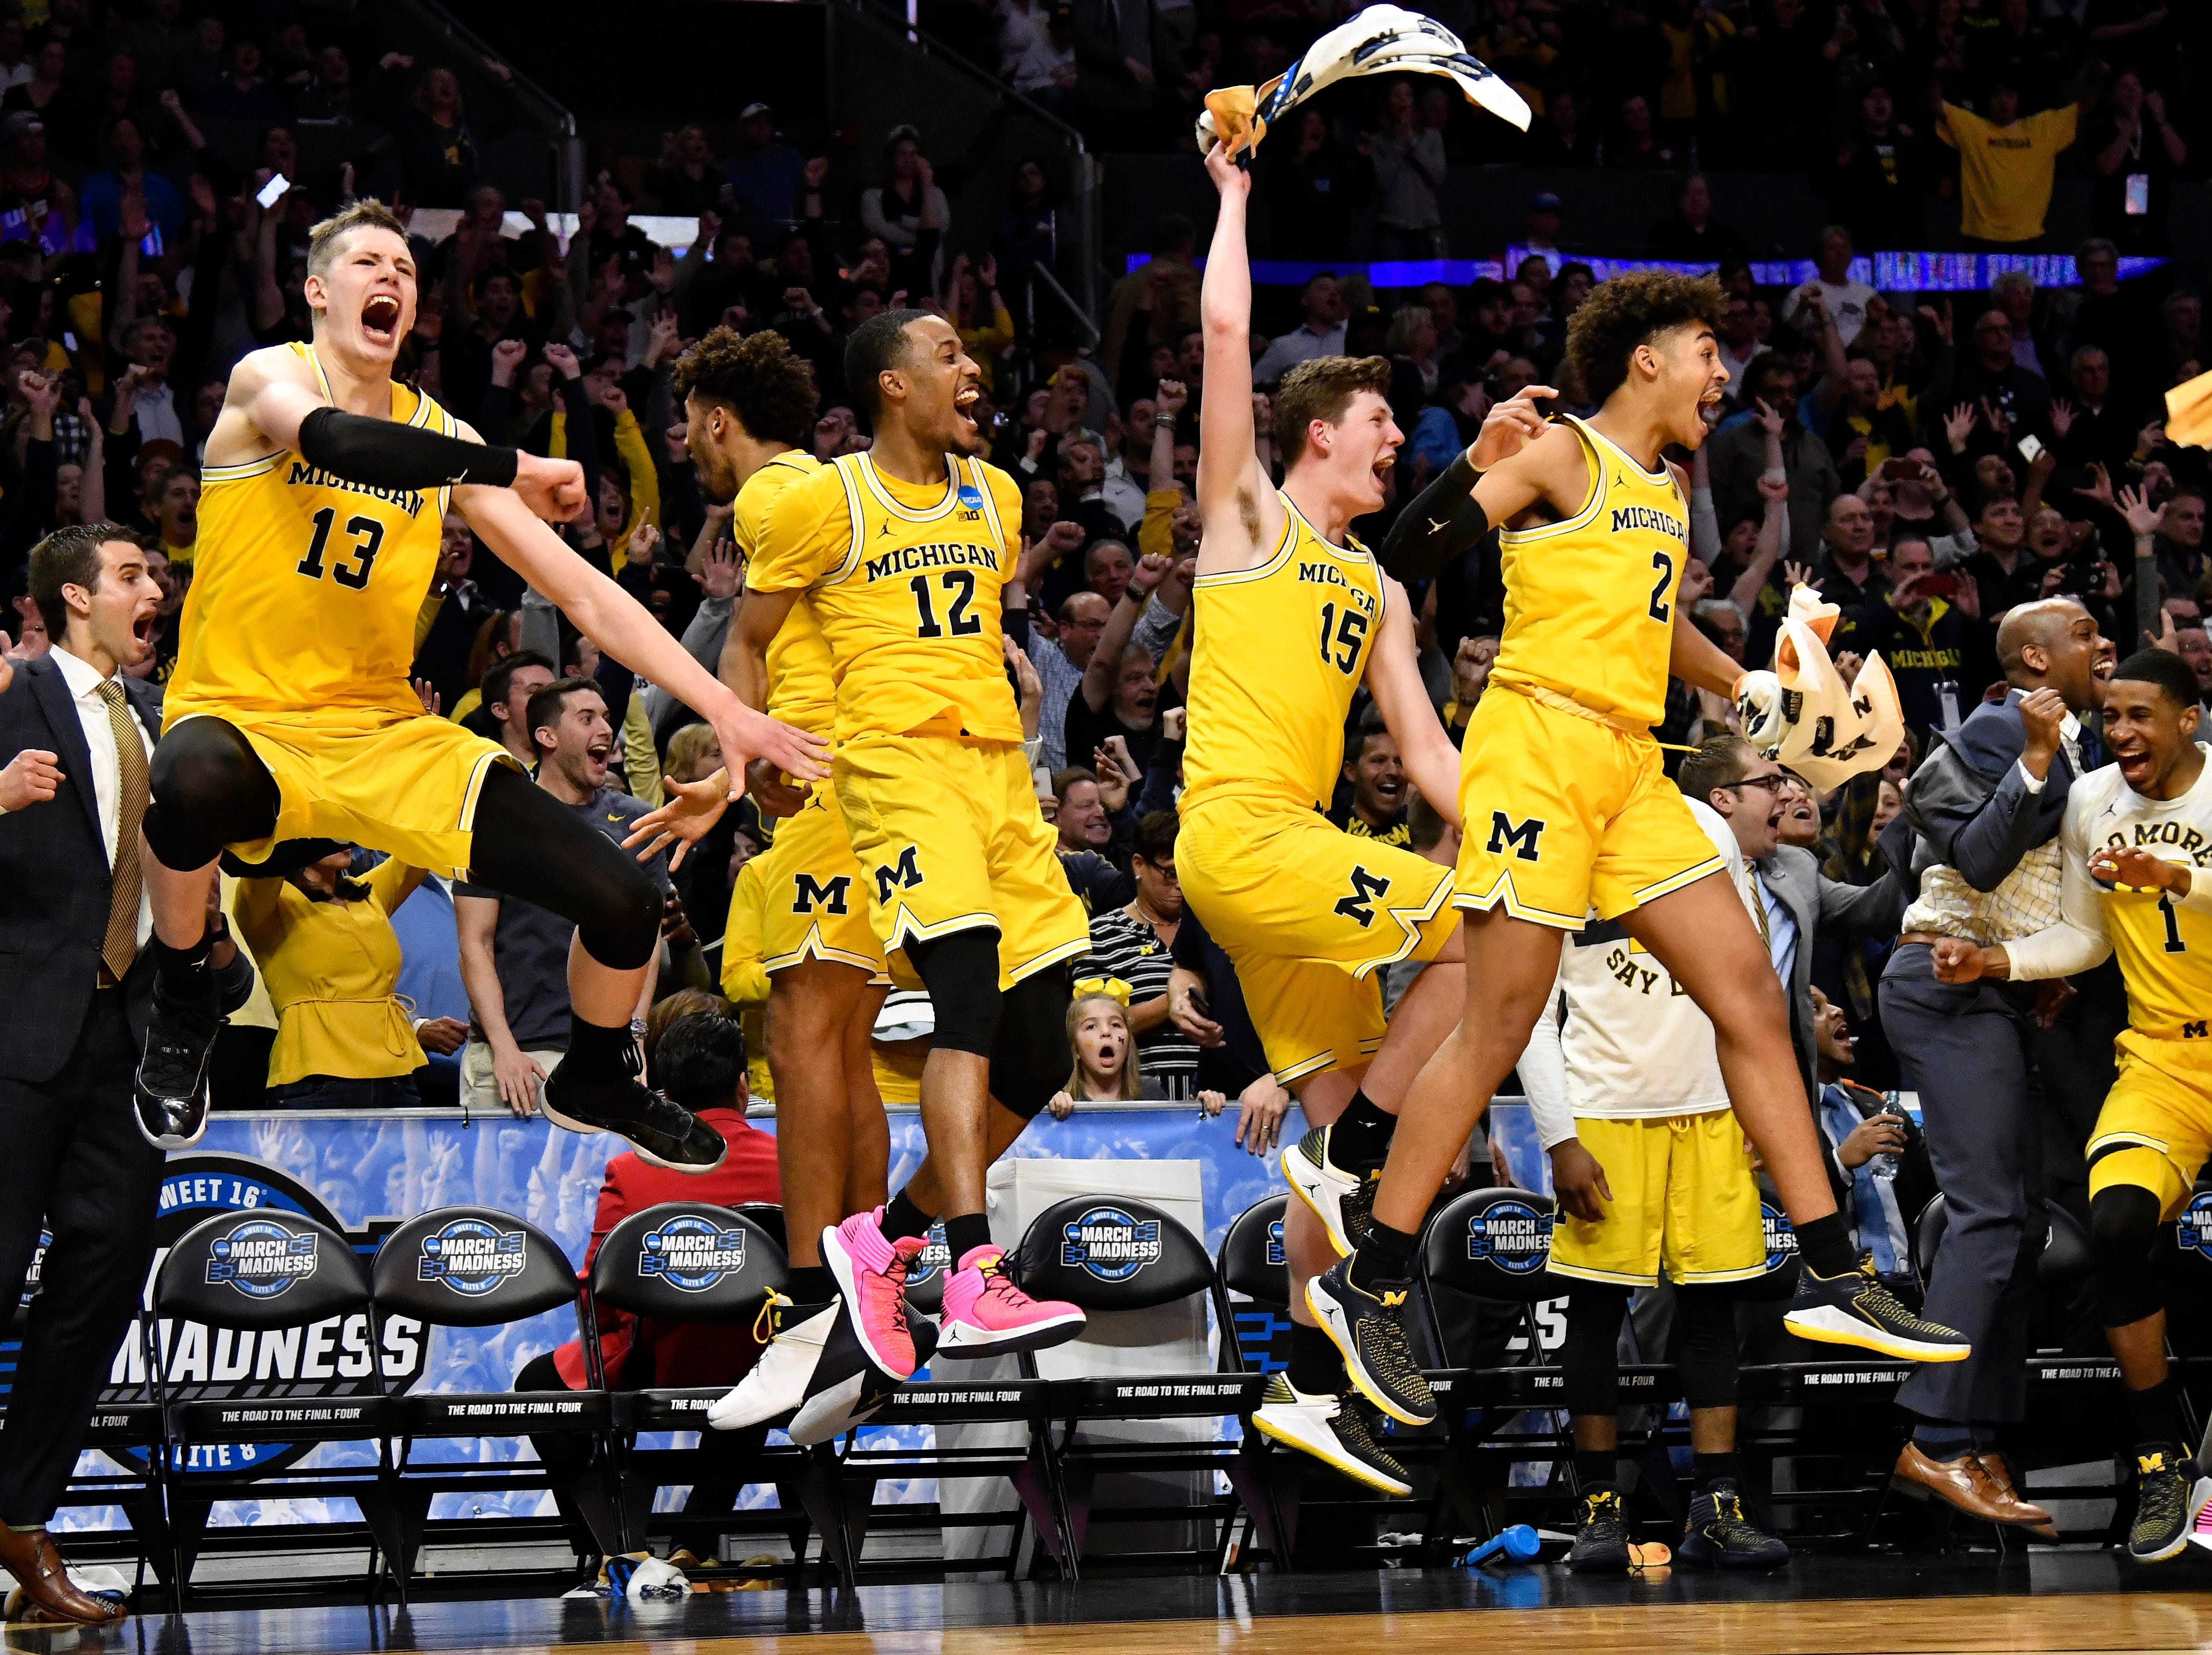 March 22: The Michigan Wolverines celebrate during their Sweet 16 win over the Texas A&M Aggies.